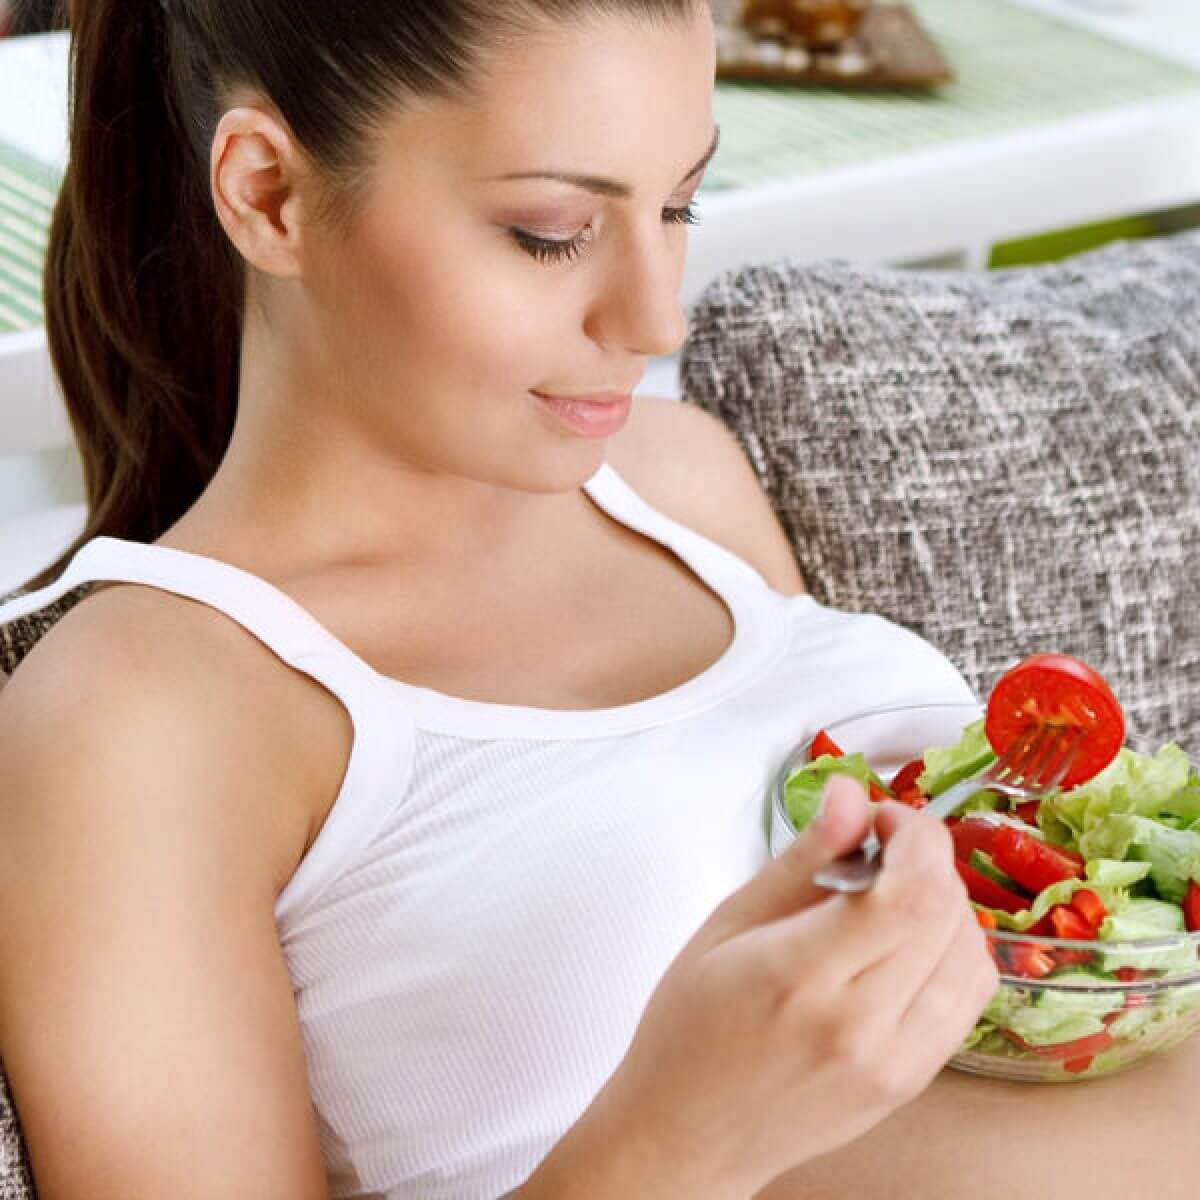 olive oil-enriched diet during pregnancy can benefit the